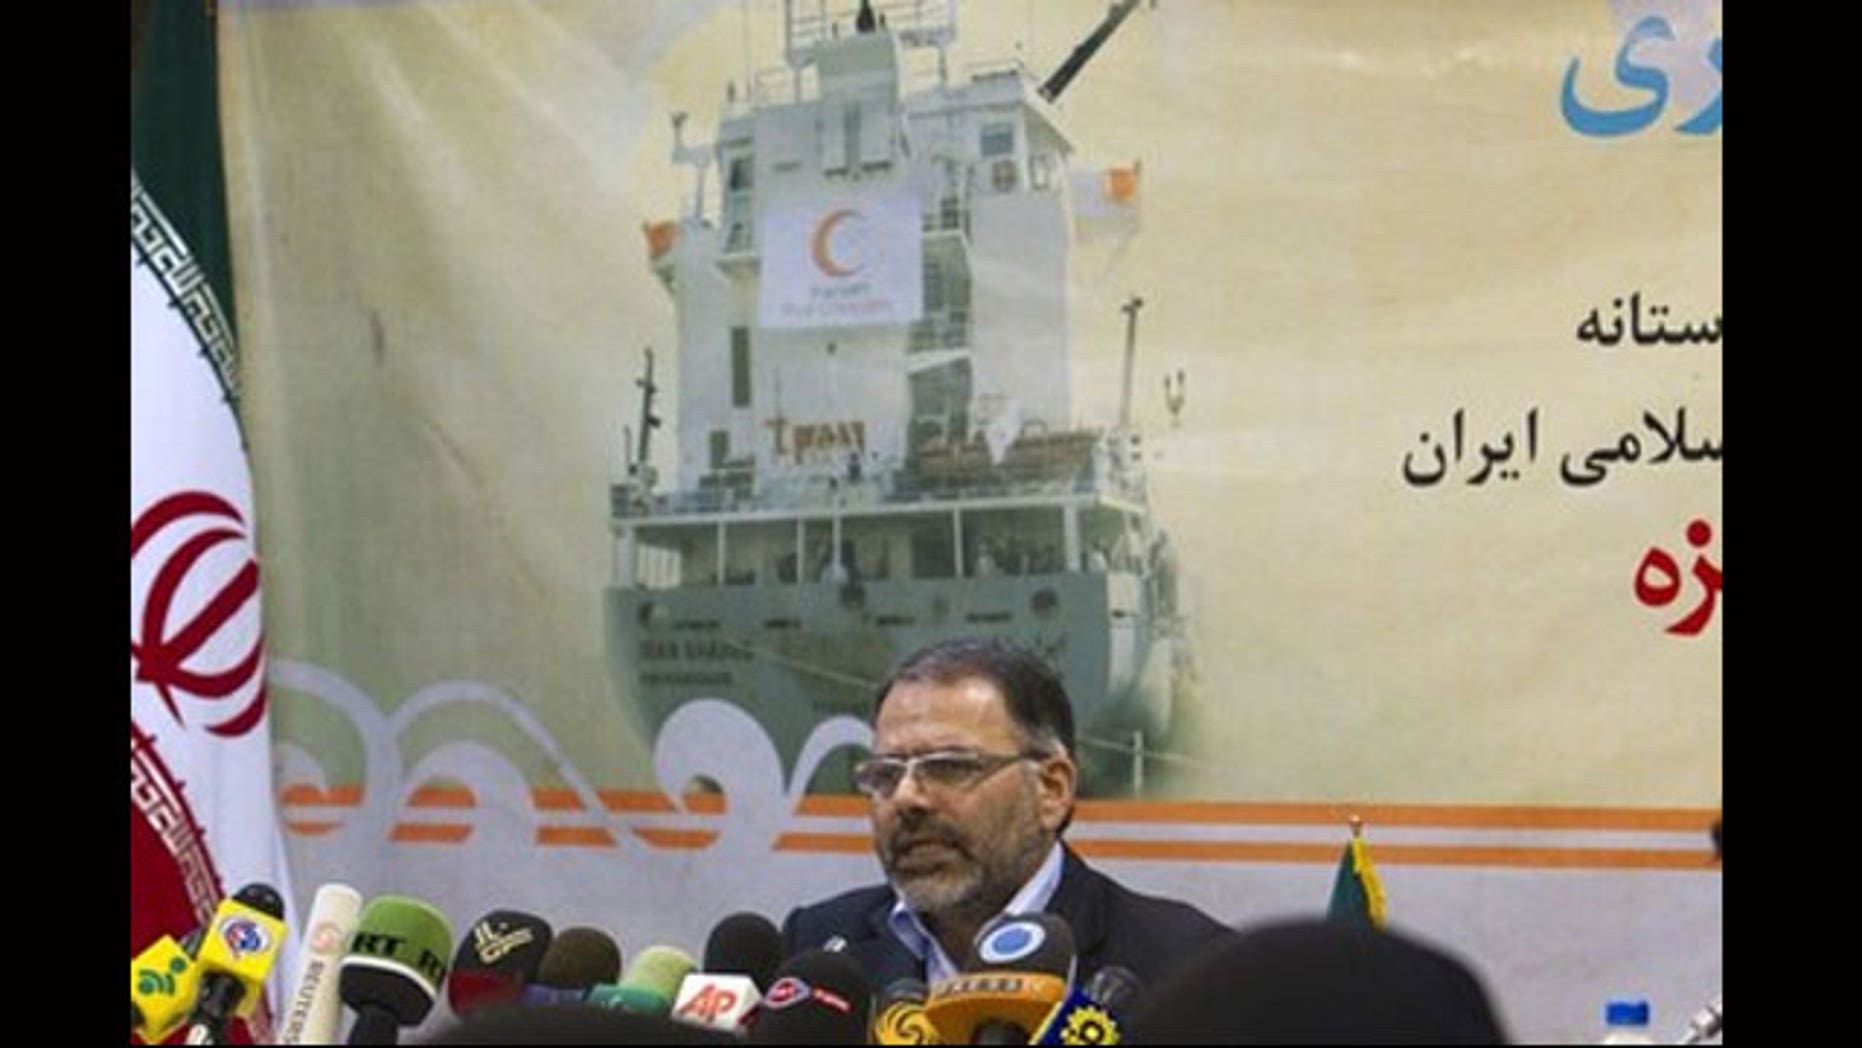 June 22: Iran's Red Crescent Director for International Affairs, Abdul Rauf Adibzadeh, speaks with journalists during a news conference in Tehran. Iran is sending aid ships to blockaded Gaza.